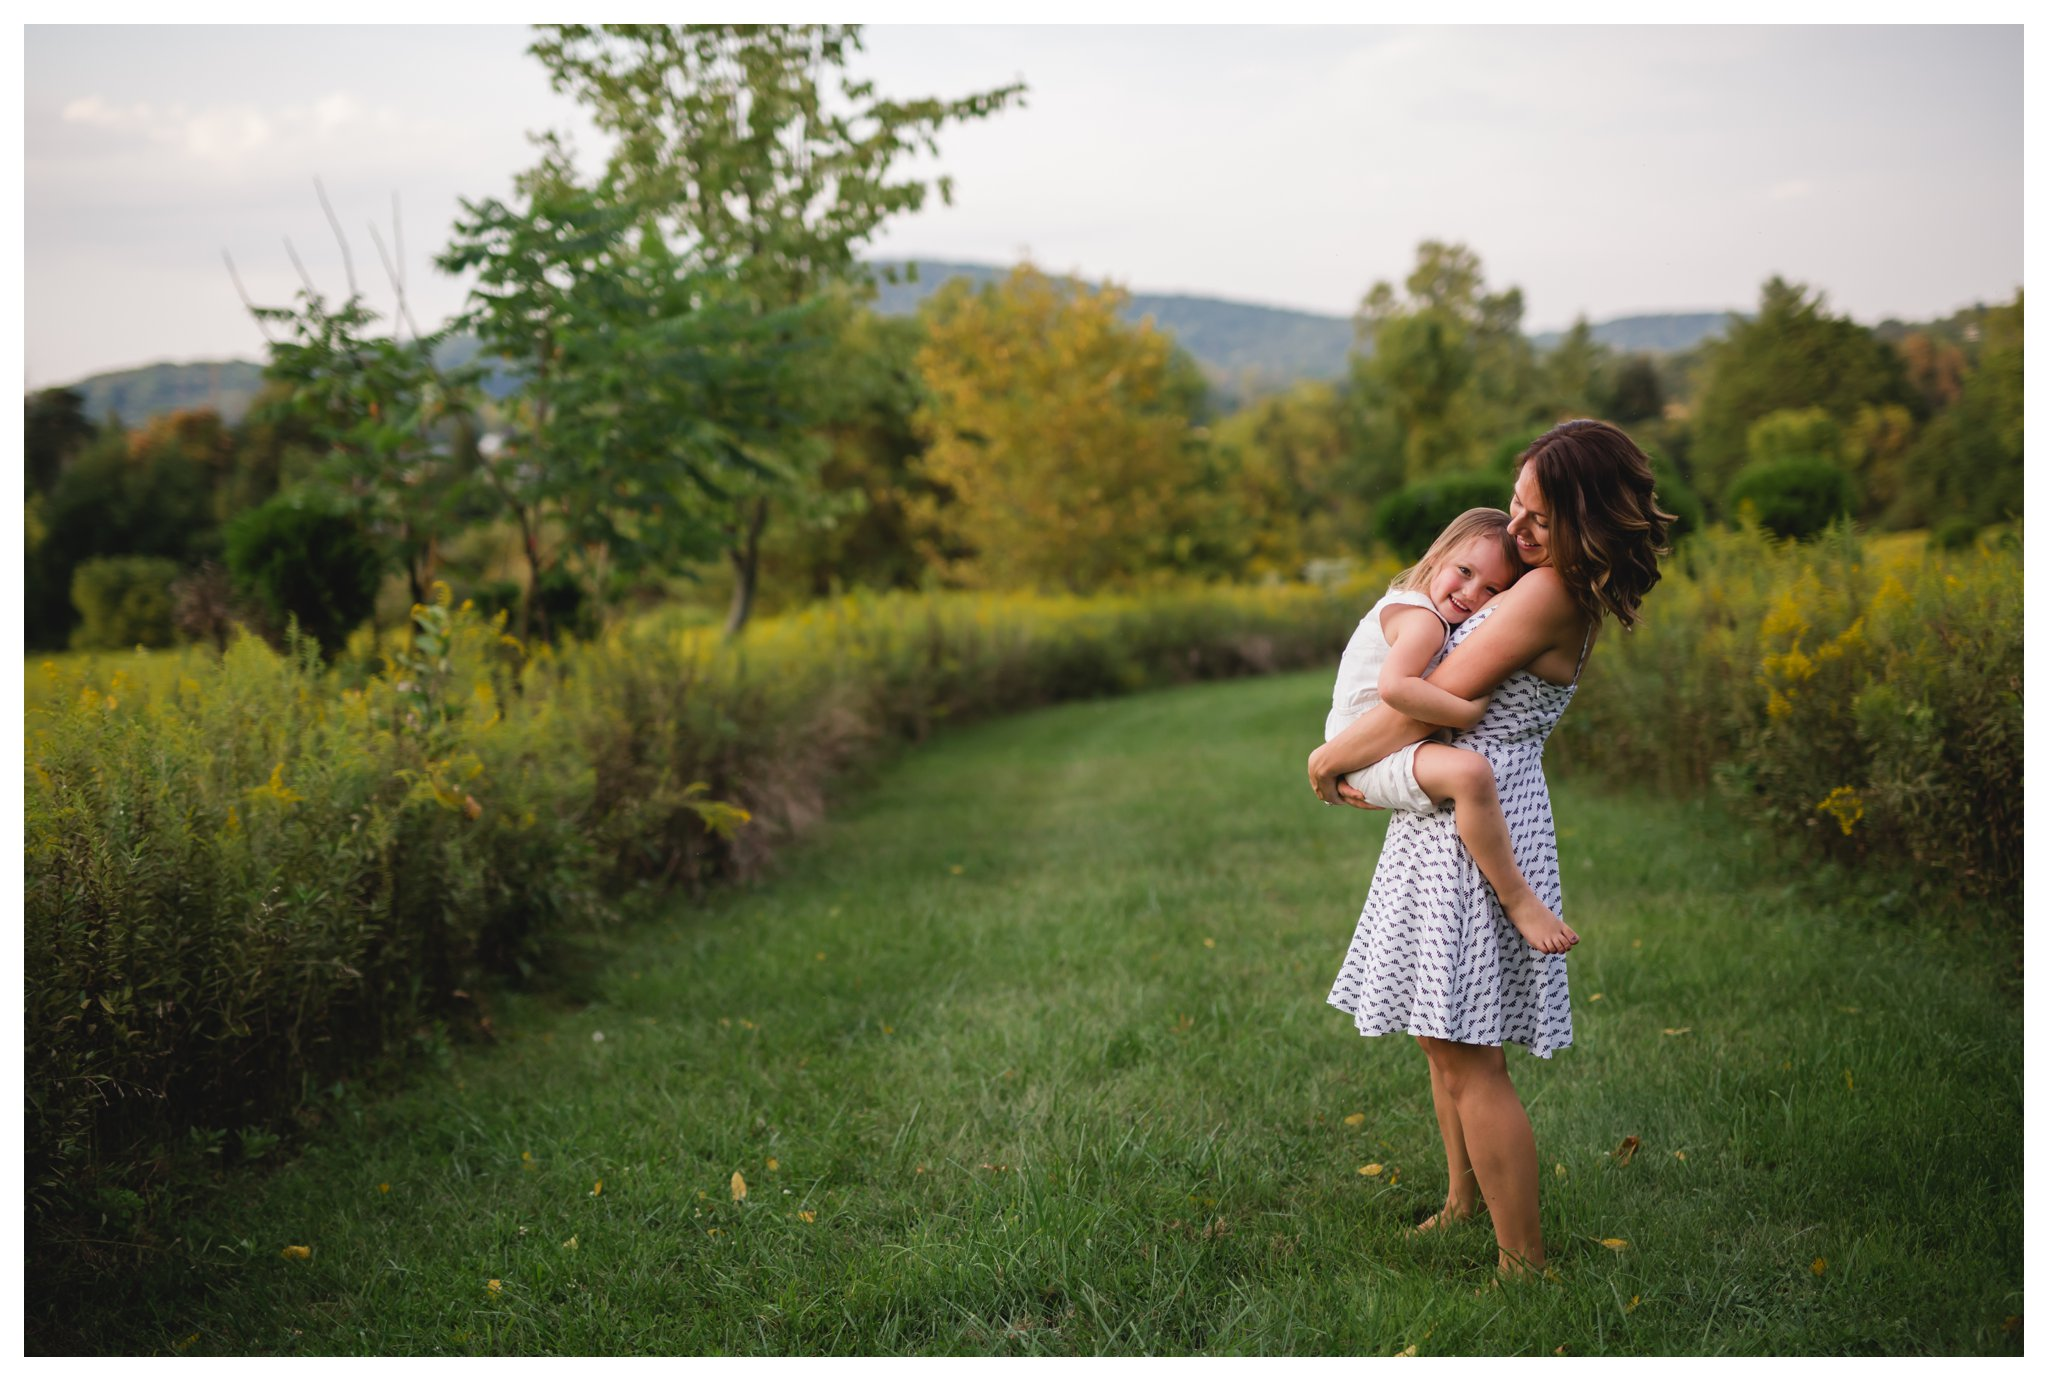 Lehigh Valley Bucks County PA Family and Child Lifestyle Photographer